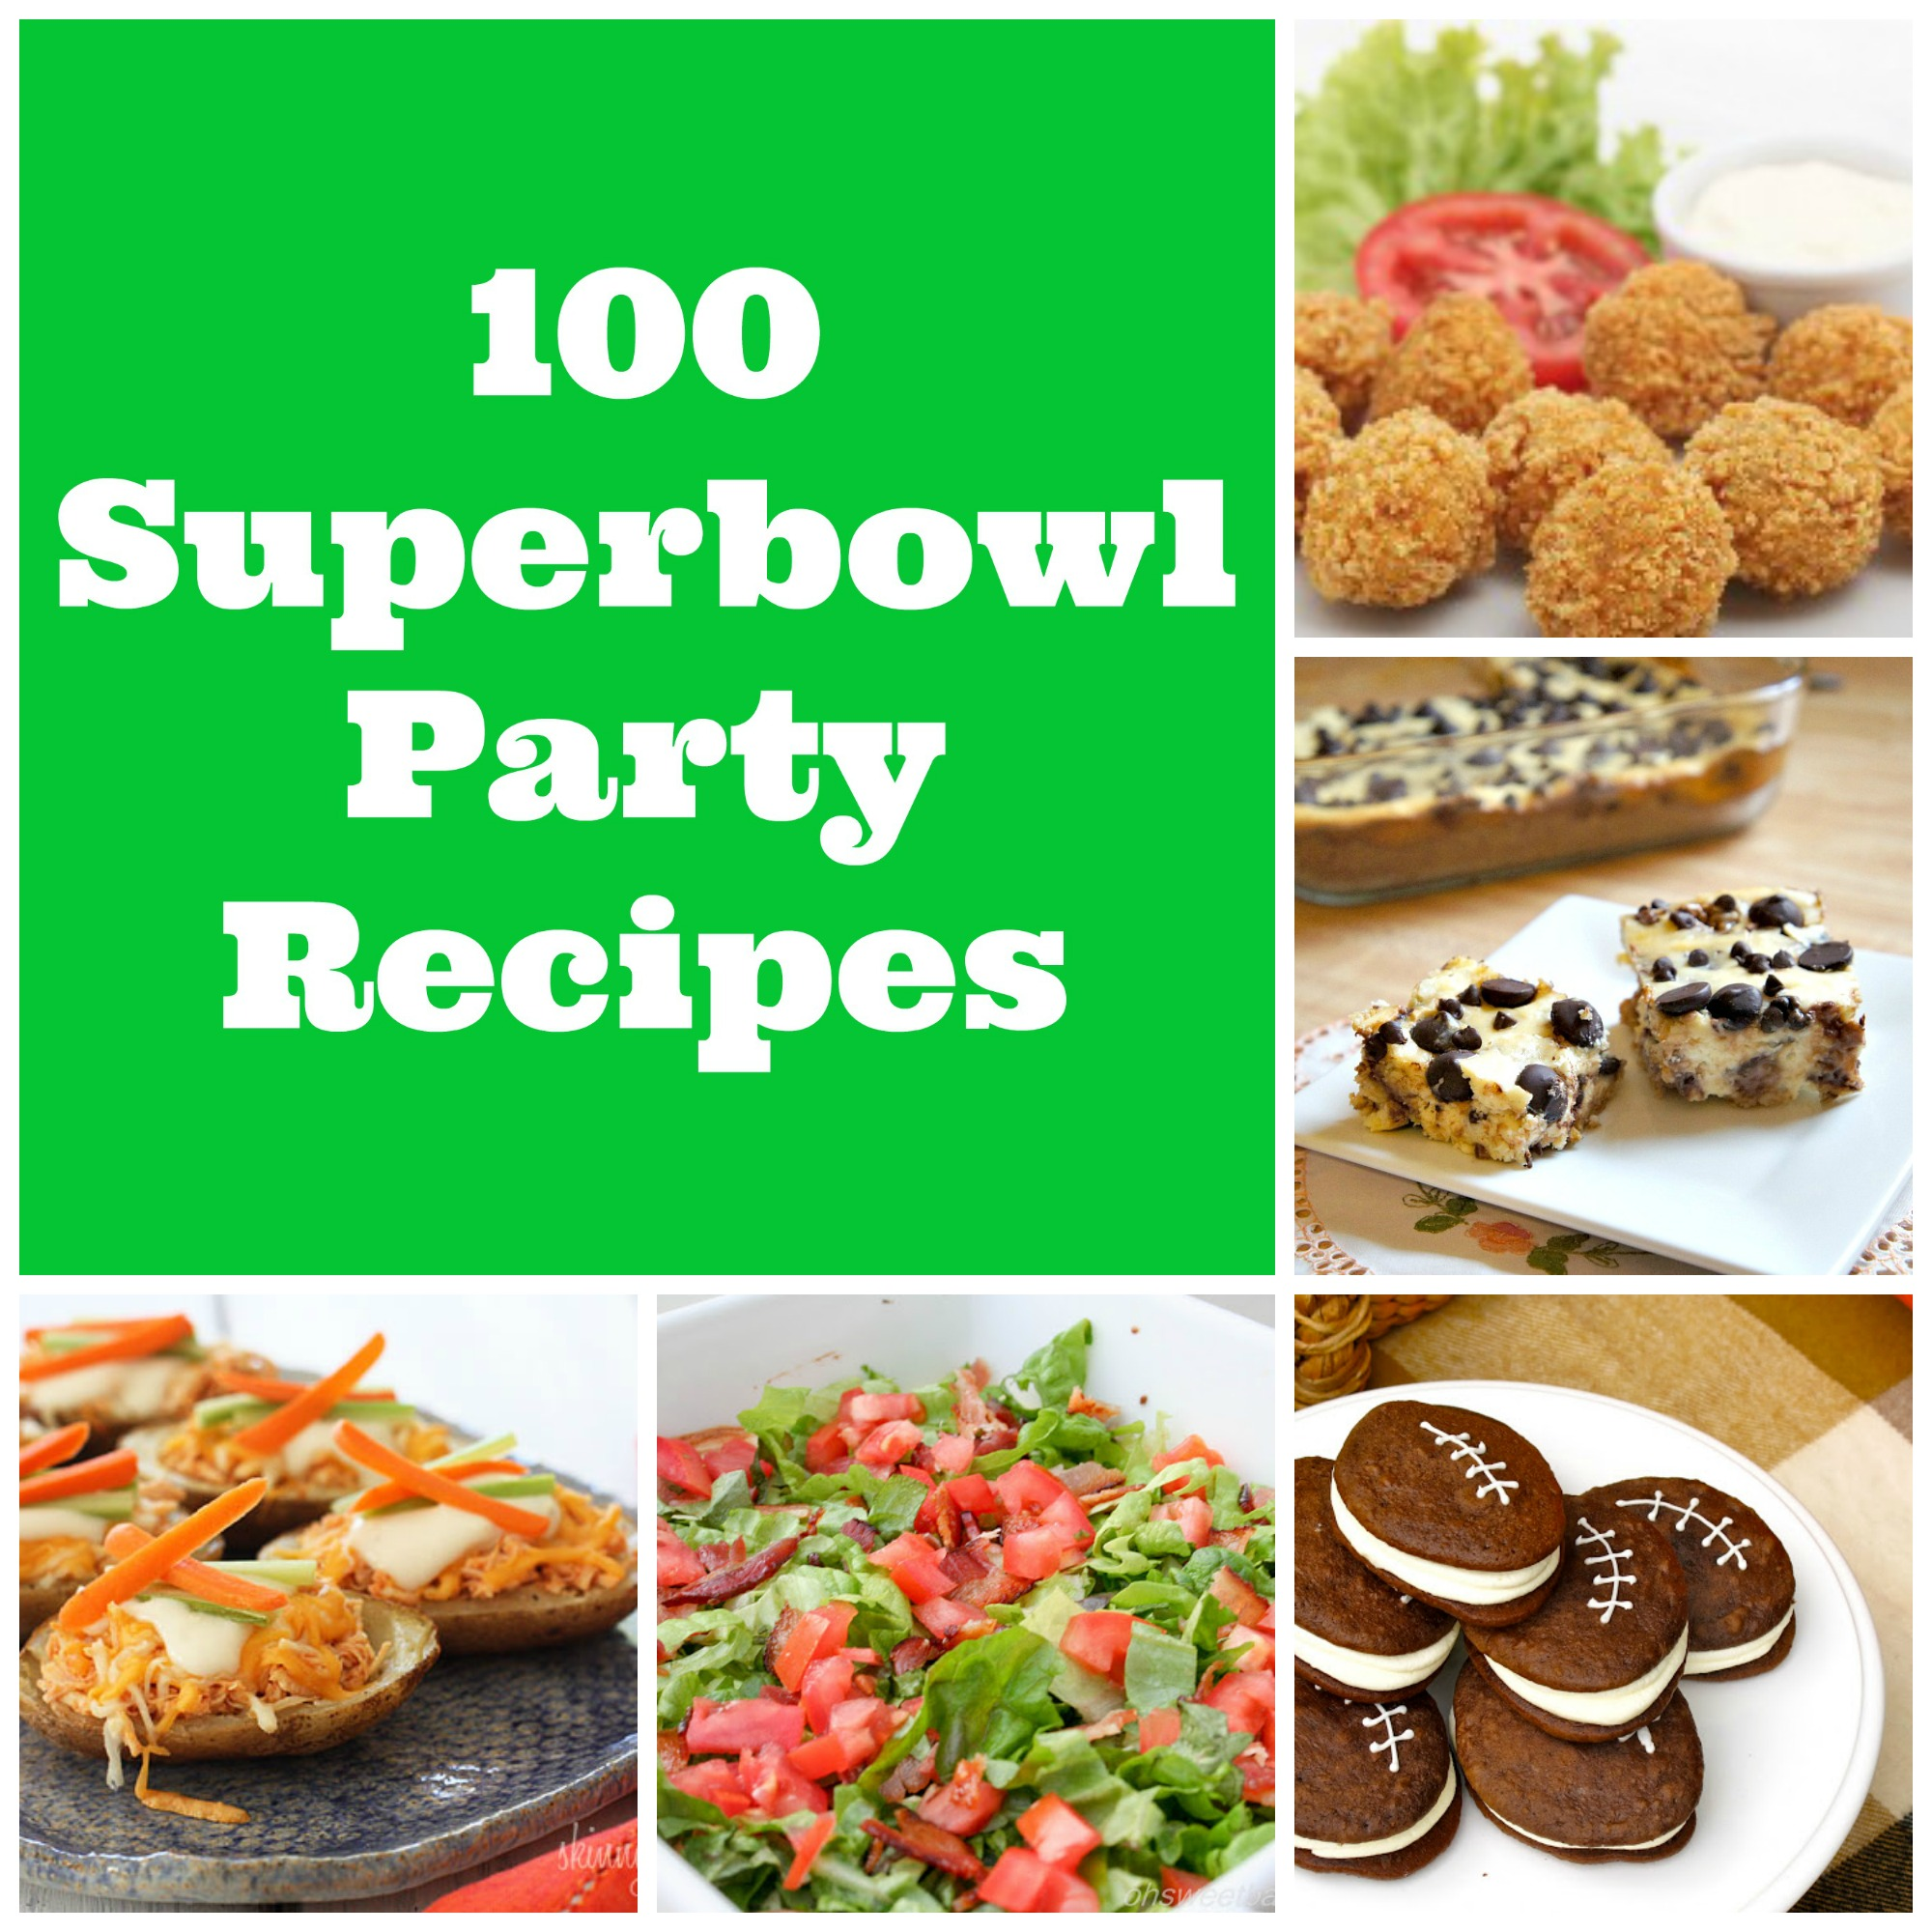 100 Superbowl Party Recipes #superbowl #recipes #roundup